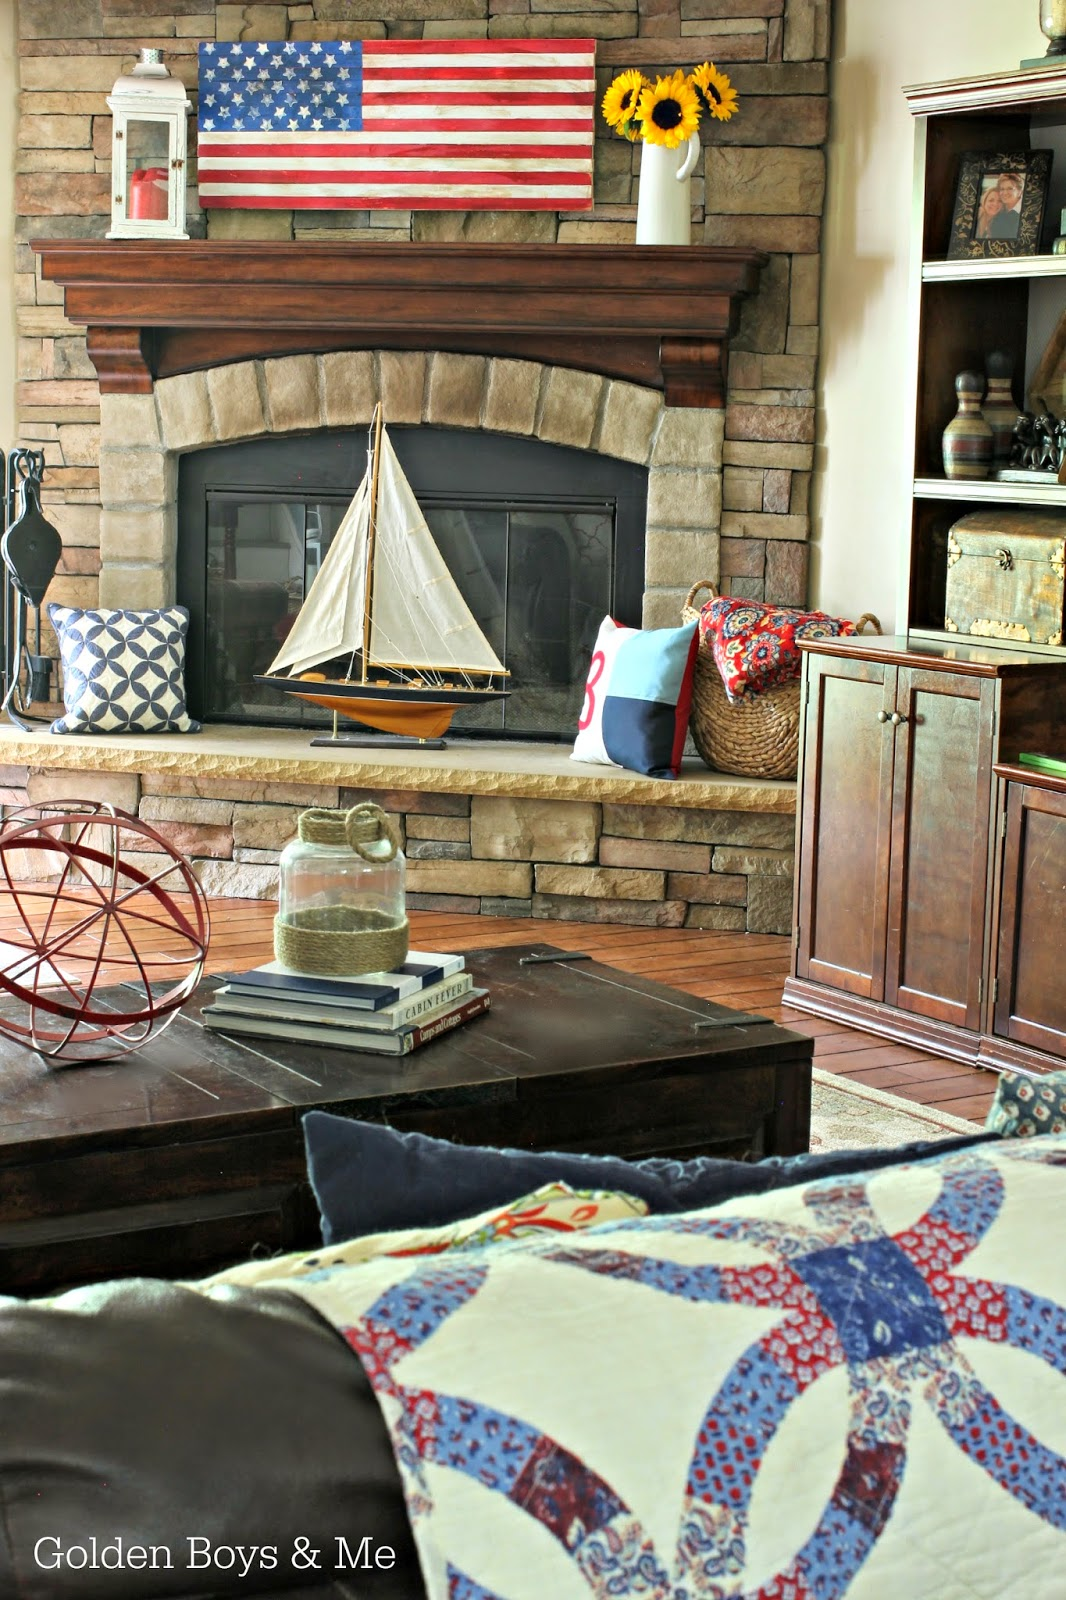 Americana family room with diy wooden flag and stone fireplace-www.goldenboysandme.com